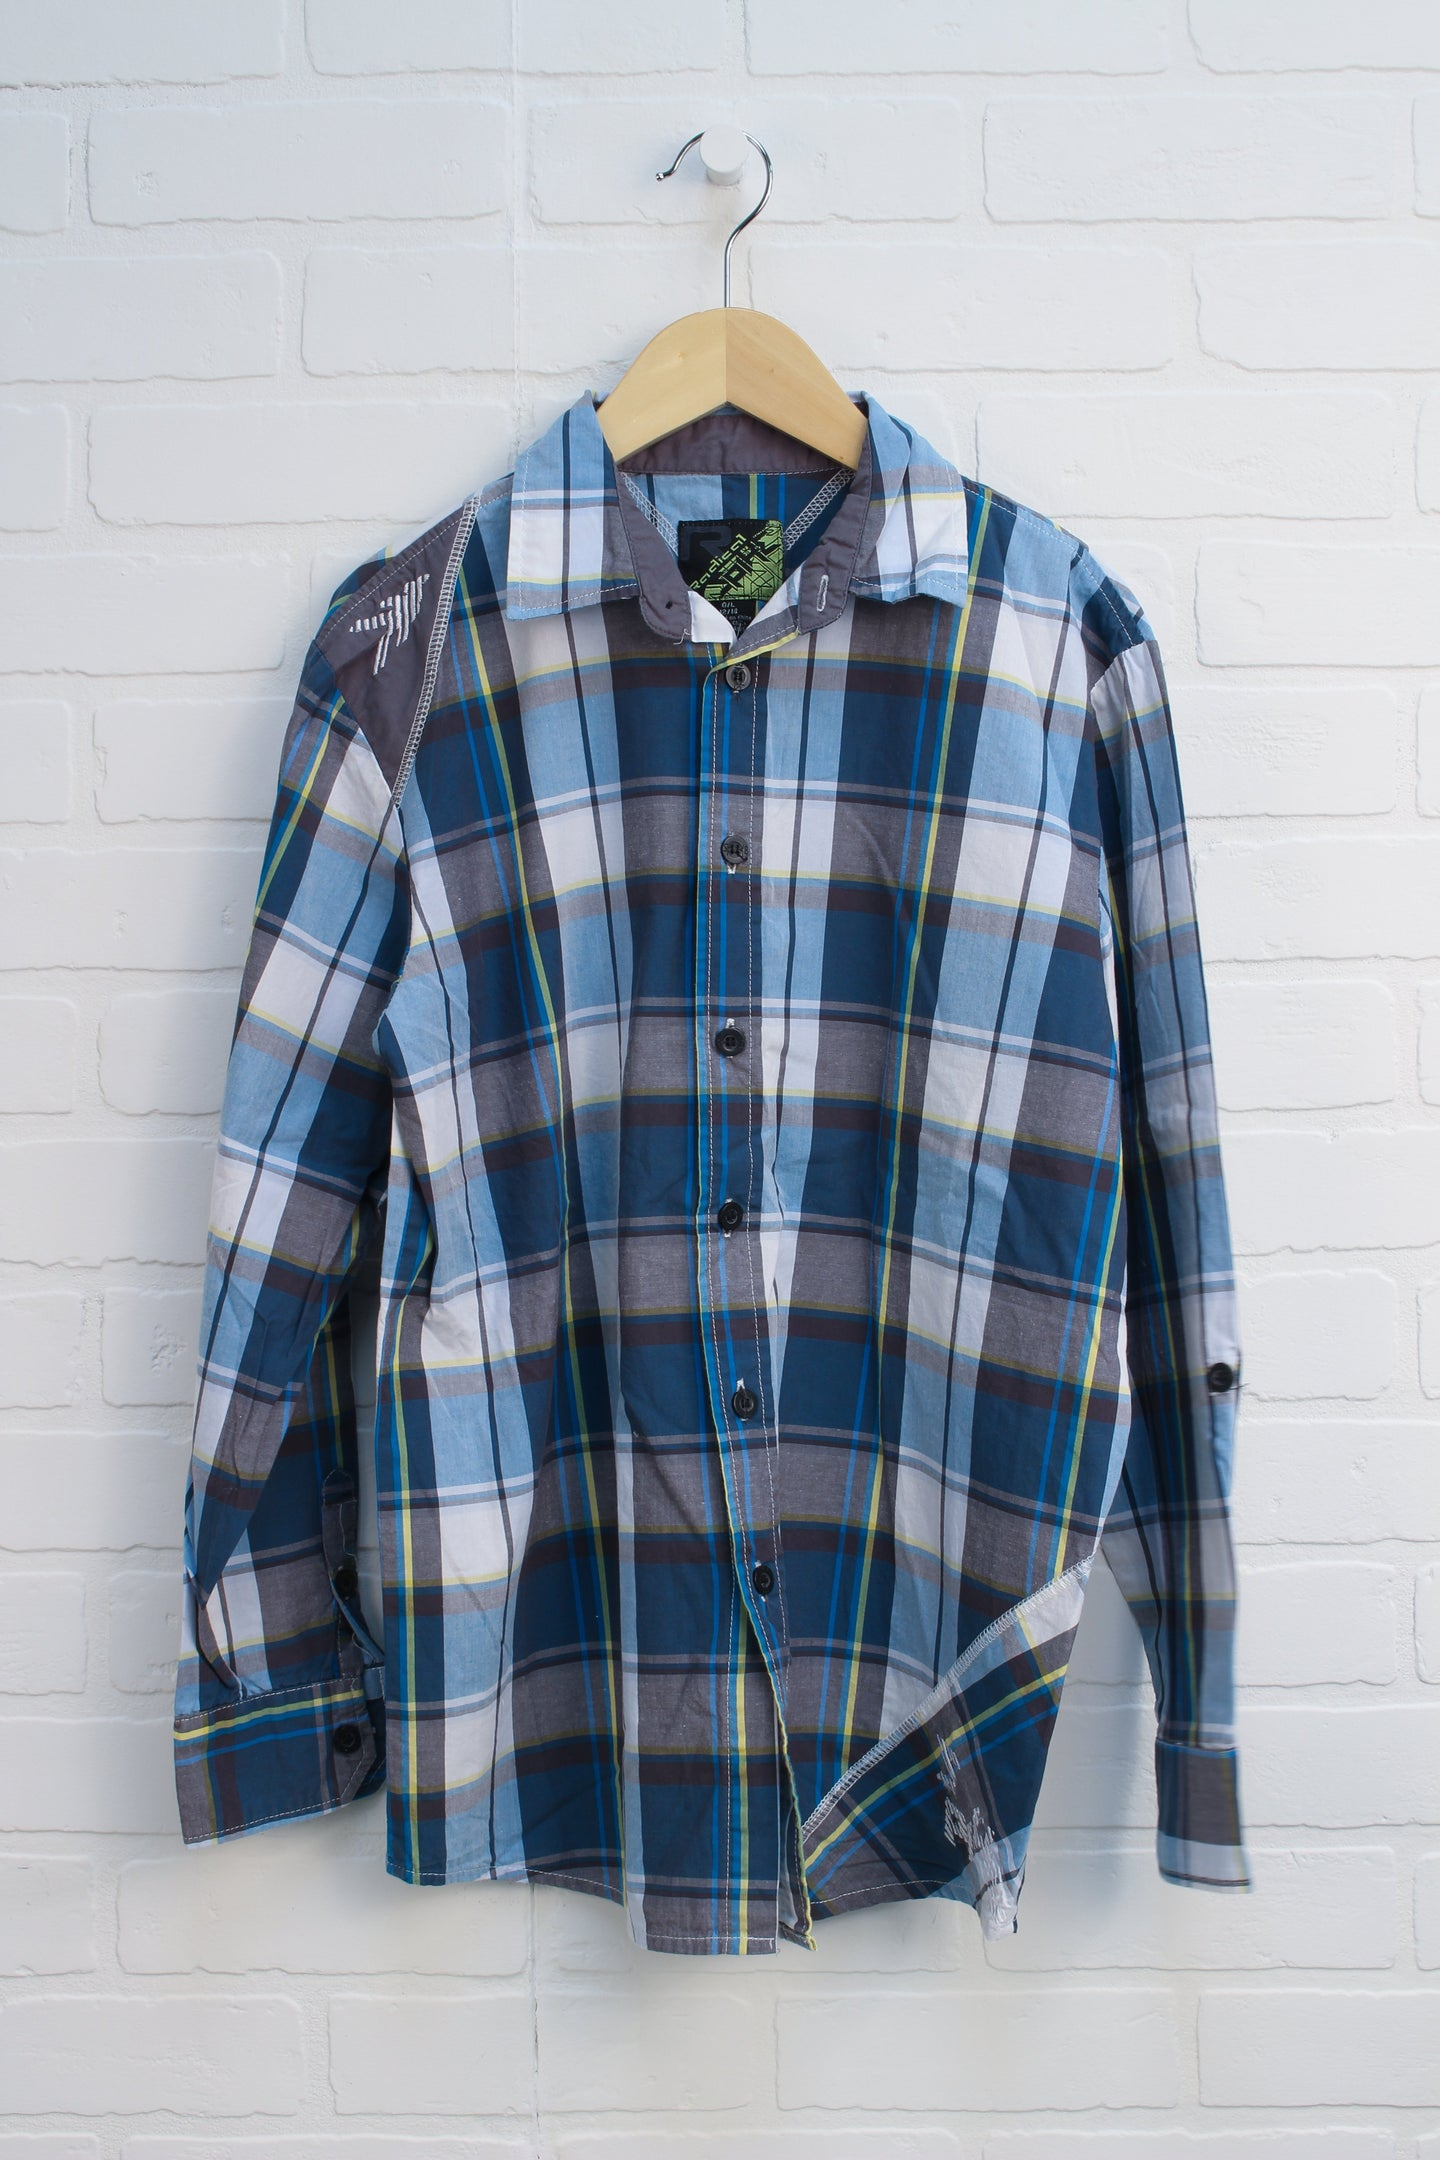 Blue + Grey Plaid Button Up (Size L/12-14)